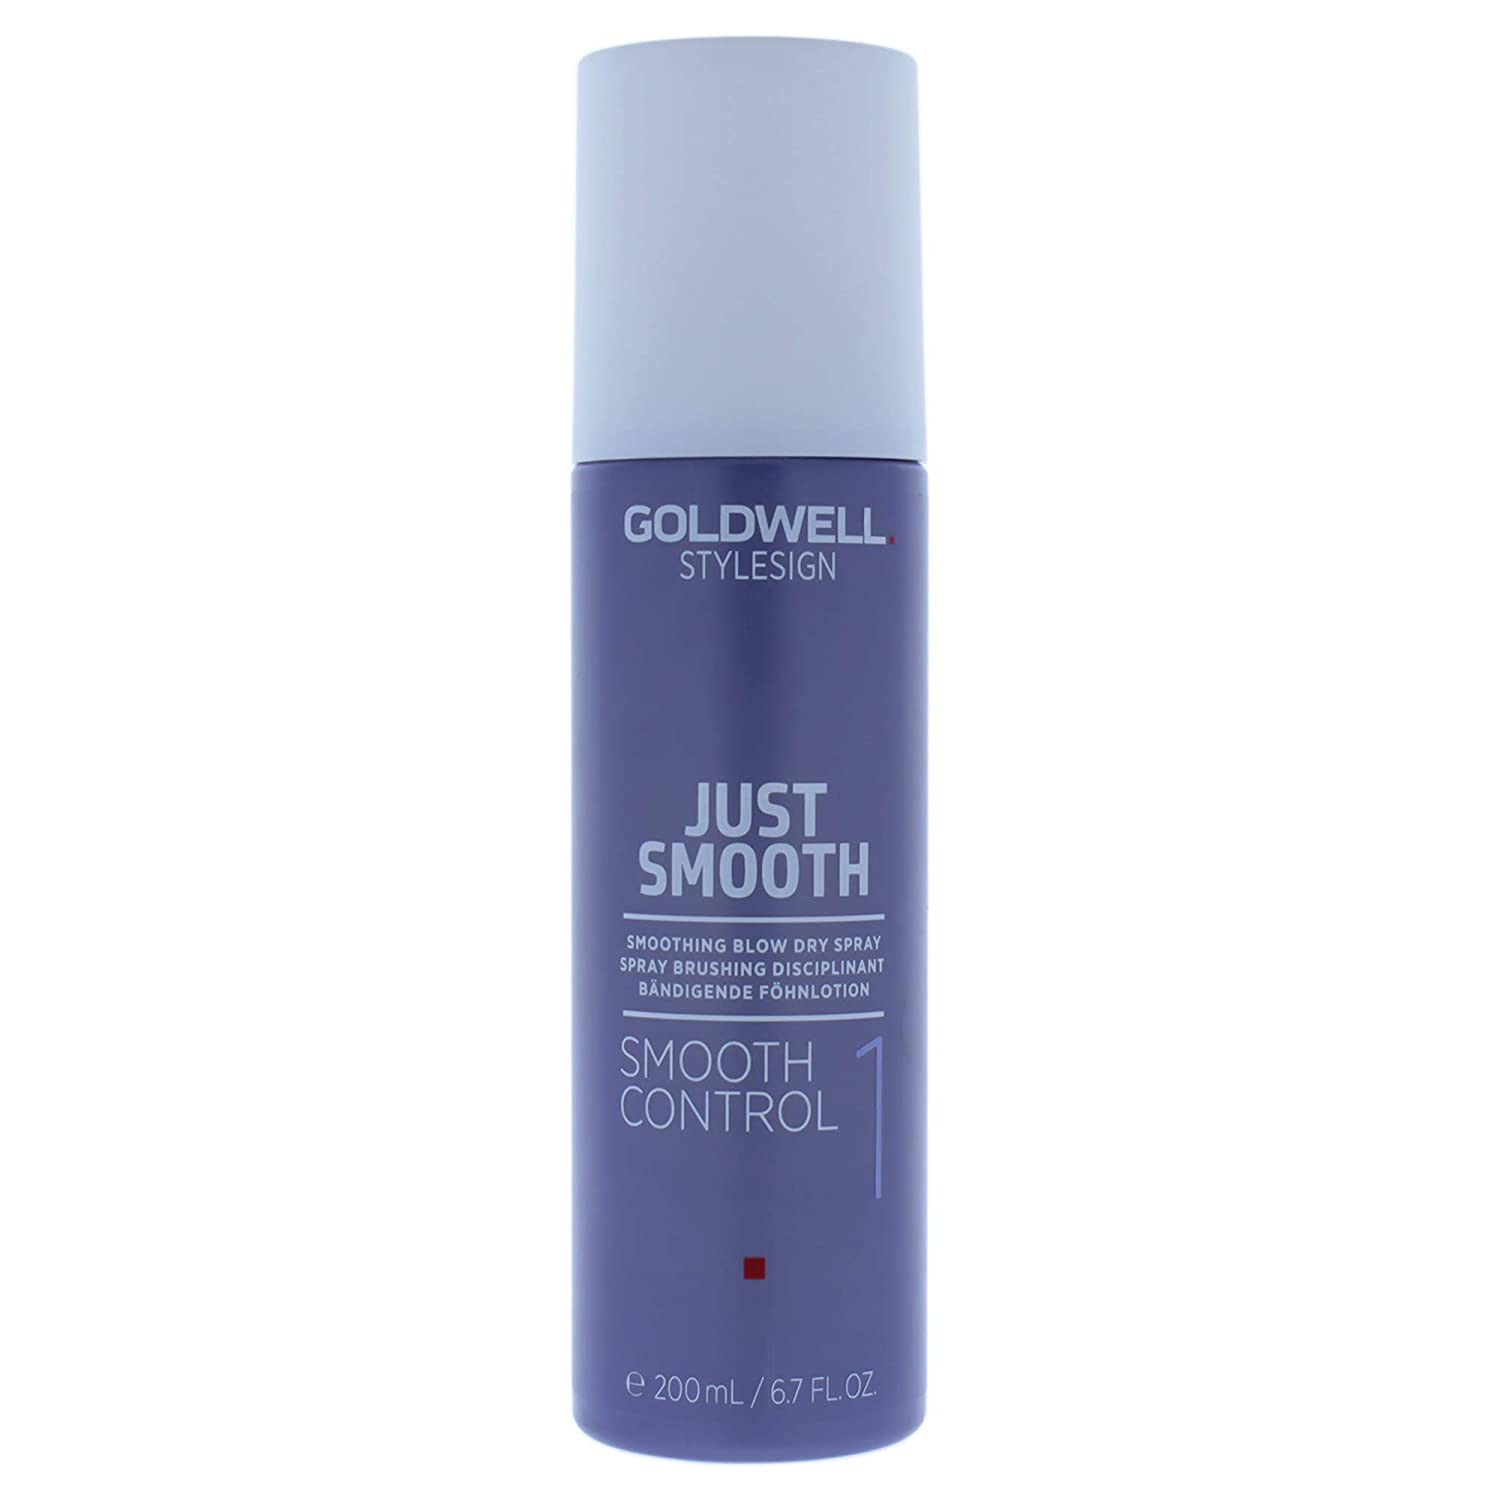 Goldwell Sign Smooth Control, Hitzeschutzspray, 1er Pack, (1x 200 ml) 96325698